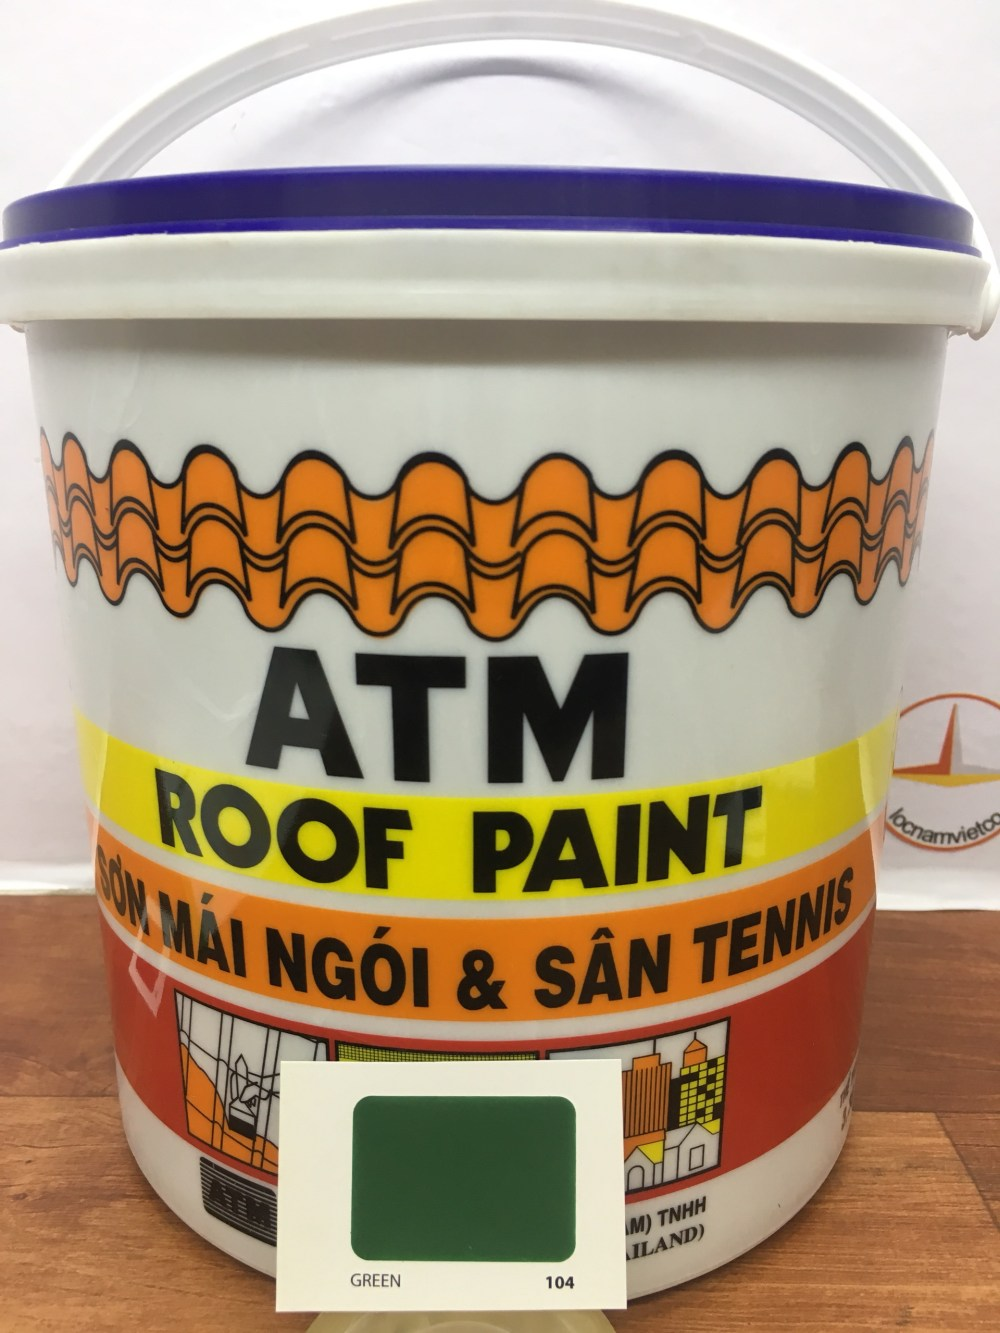 SON MAI NGOI & TENNIS ATM ROOF PAINT GREEN 104 (2)